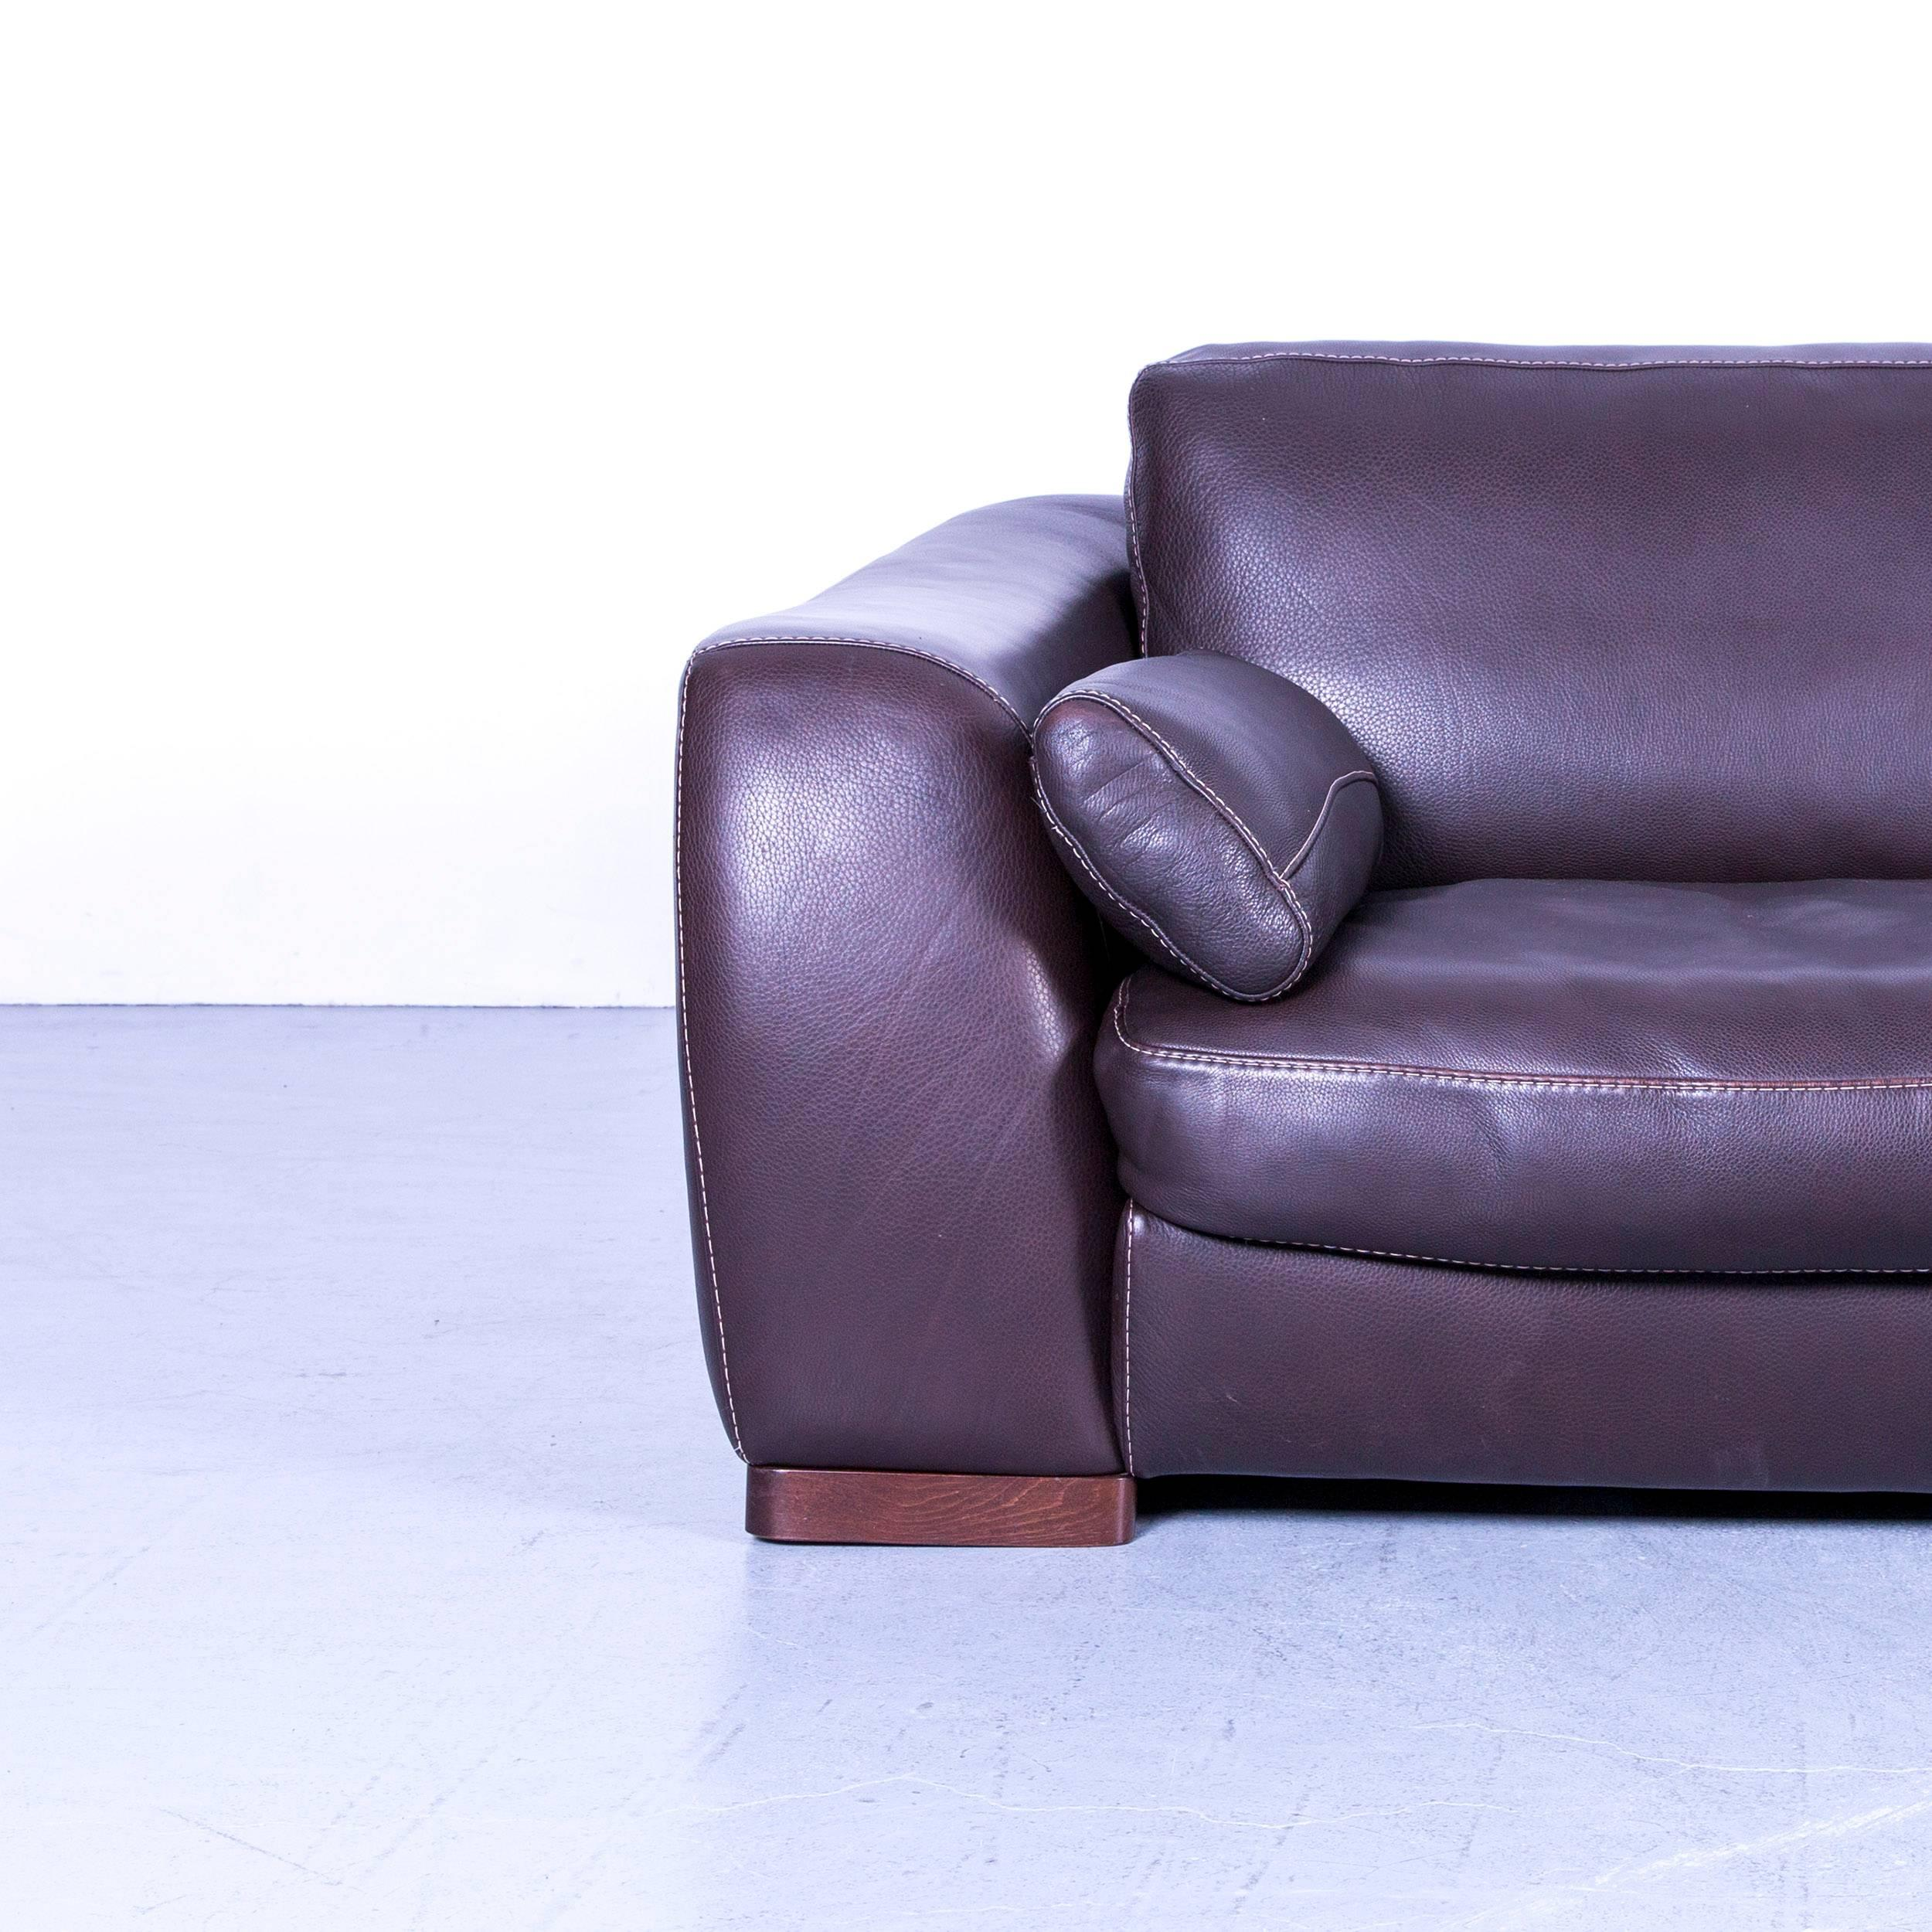 Incanto Designer Sofa Brown Three Seater Couch With Pillows Leather At  1stdibs